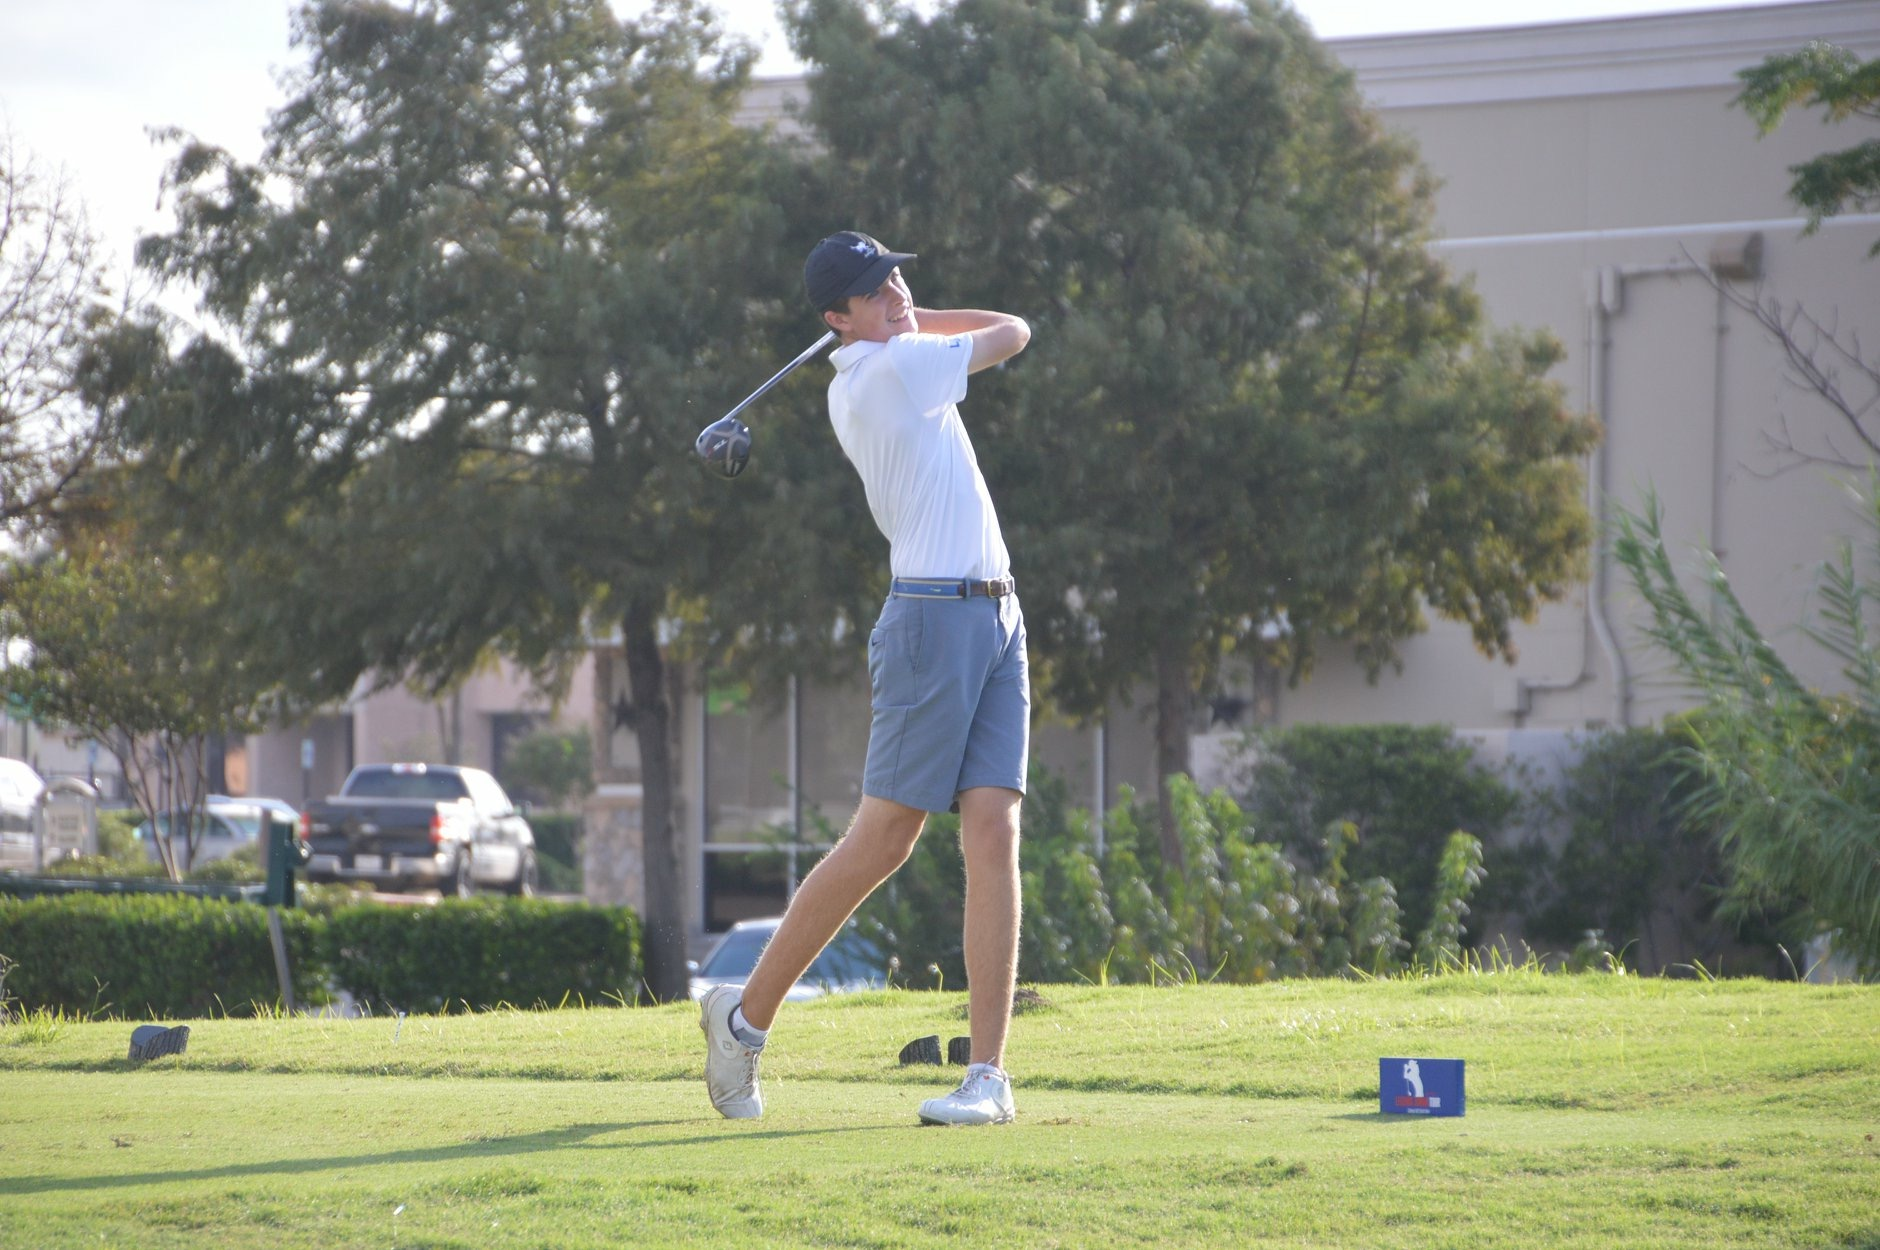 Jack Lawlor - Golfer, Lake Travis HS